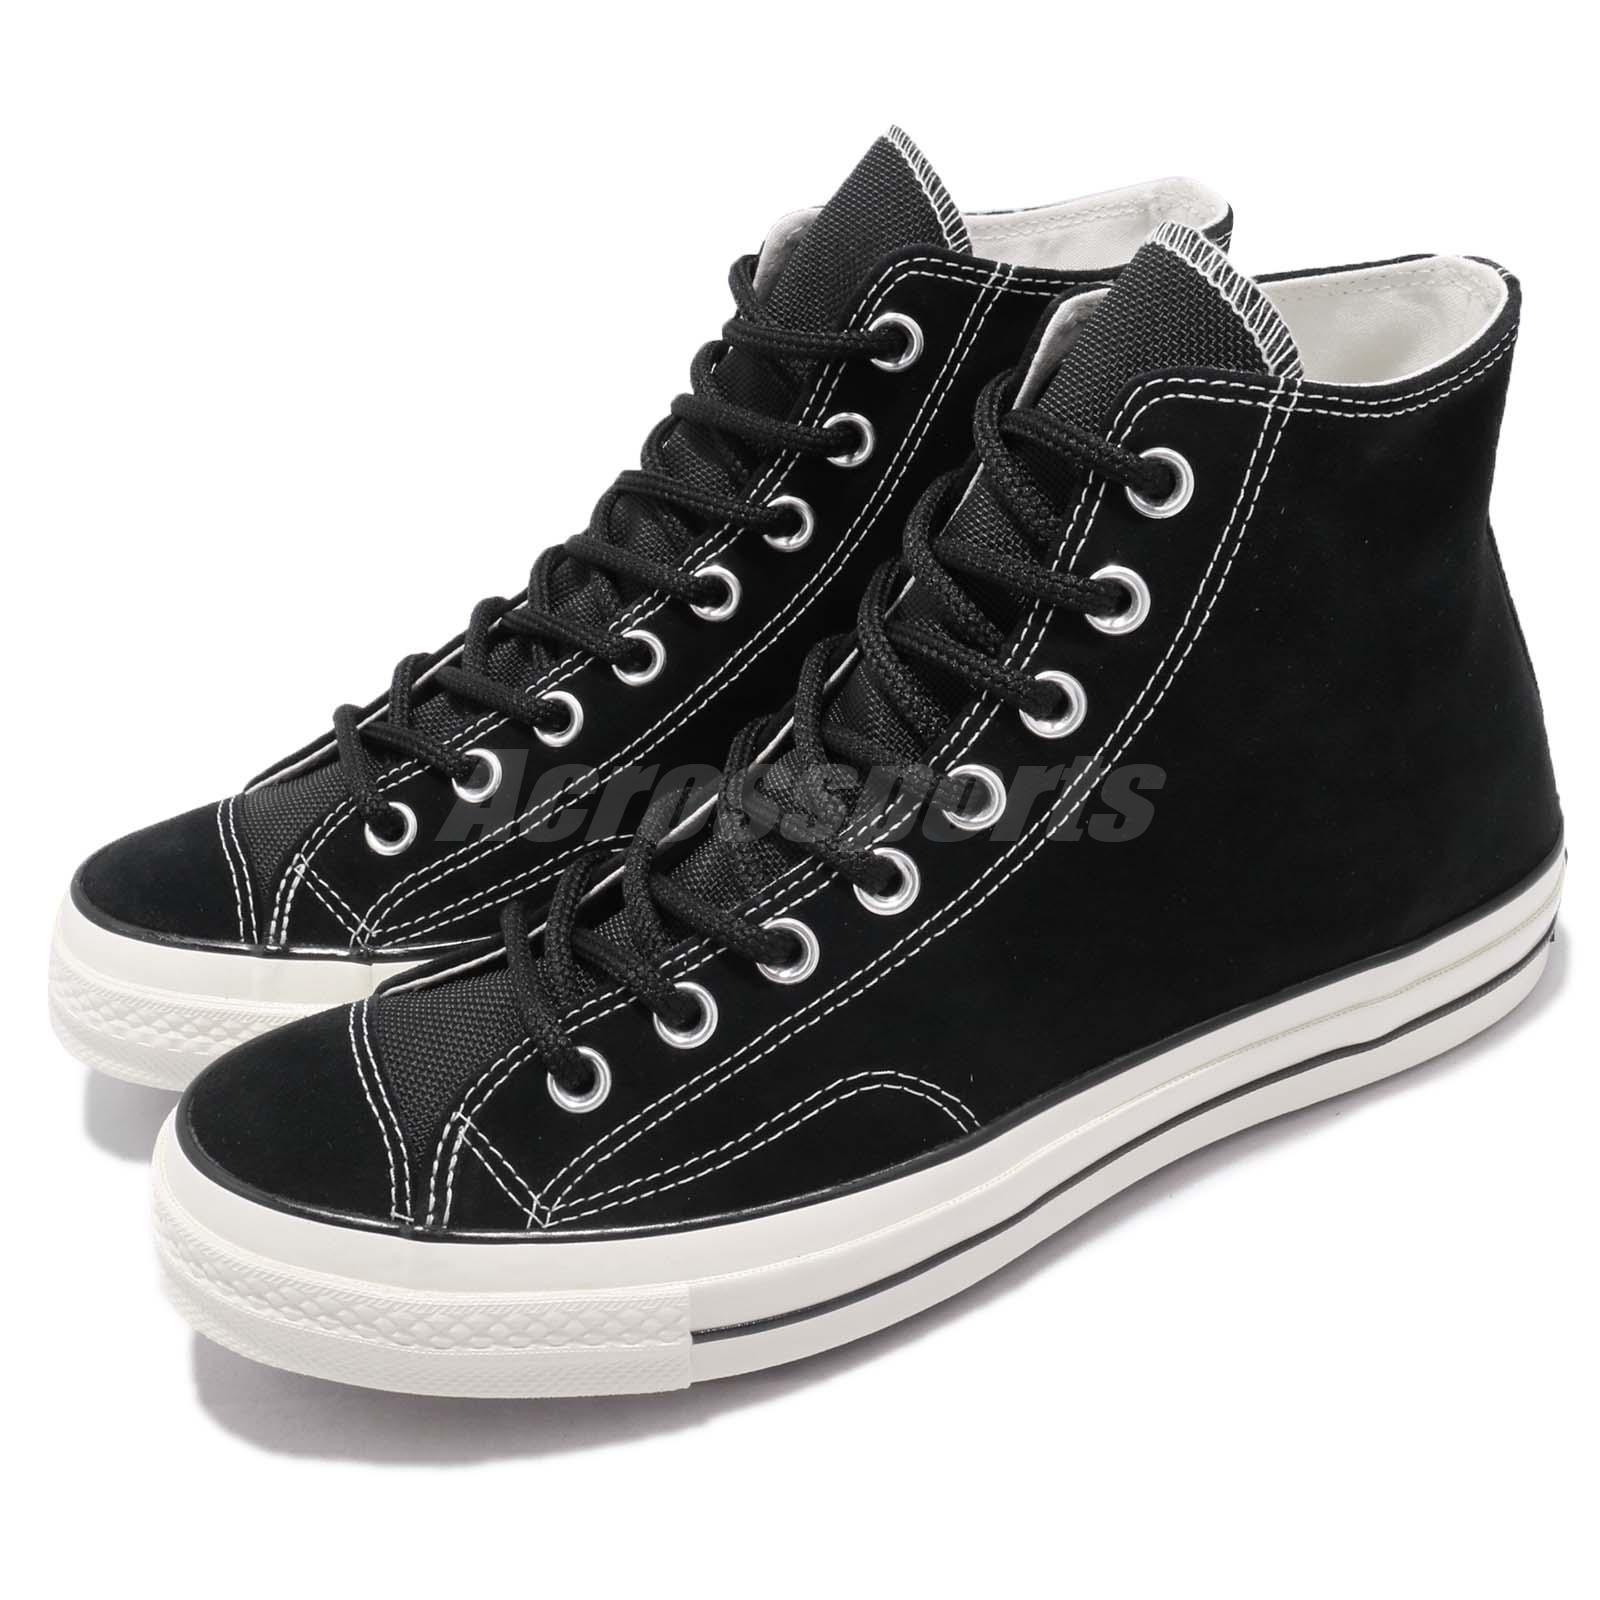 319f2a837512 Details about converse first string chuck taylor all star black men women  shoes jpg 1600x1600 First